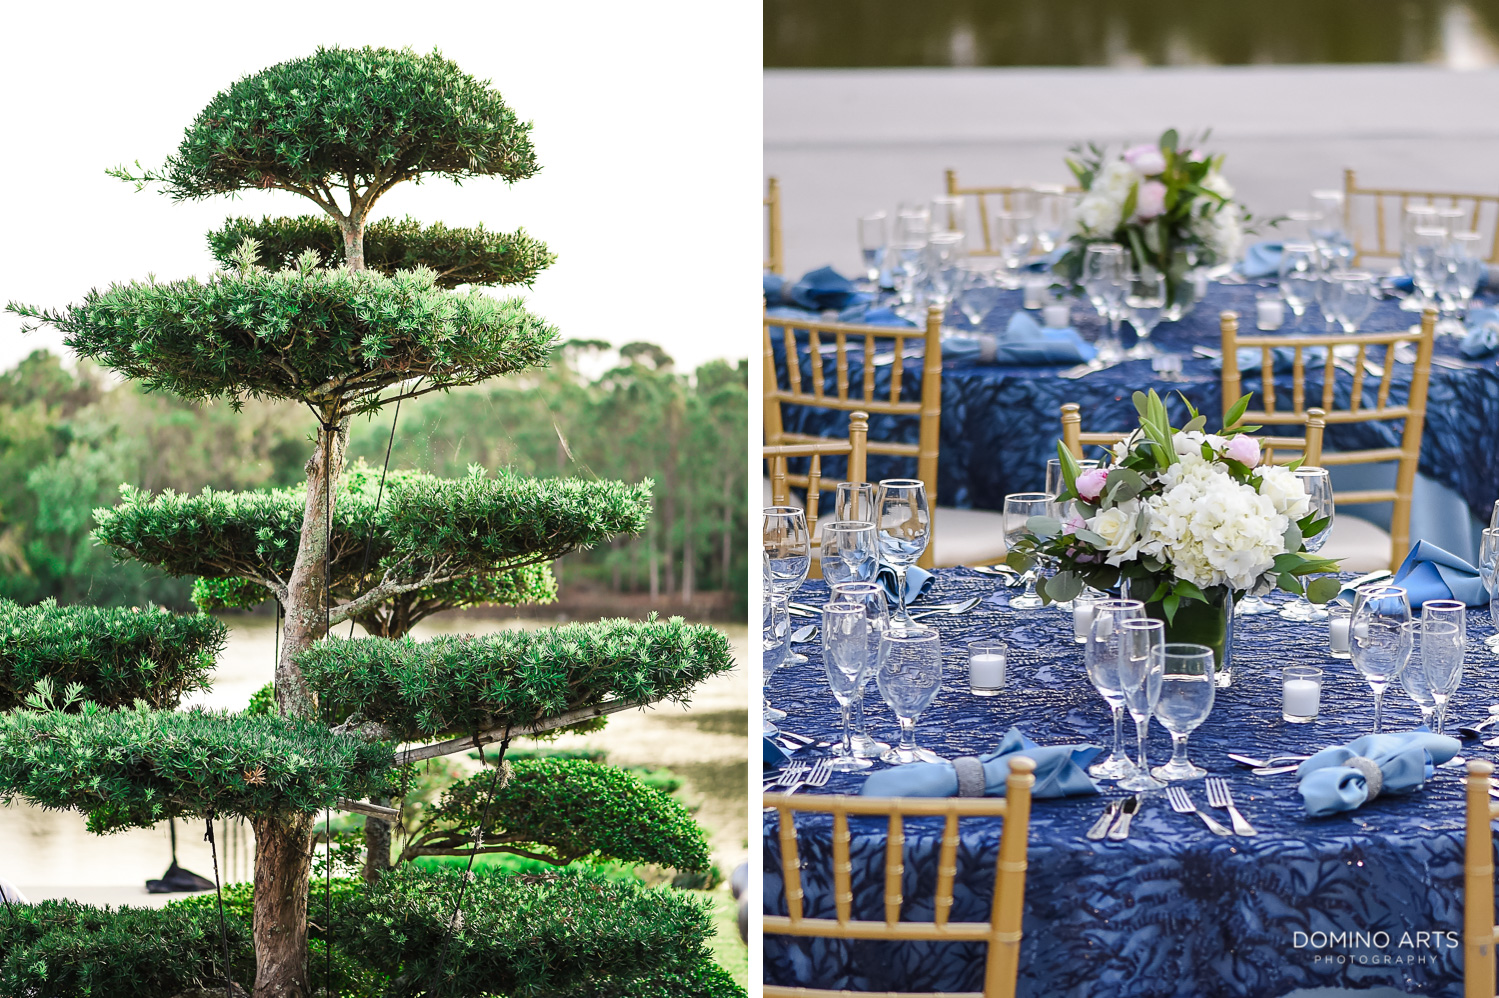 Decor Idea details for Birthday at Morikami Museum and Japanese Gardens